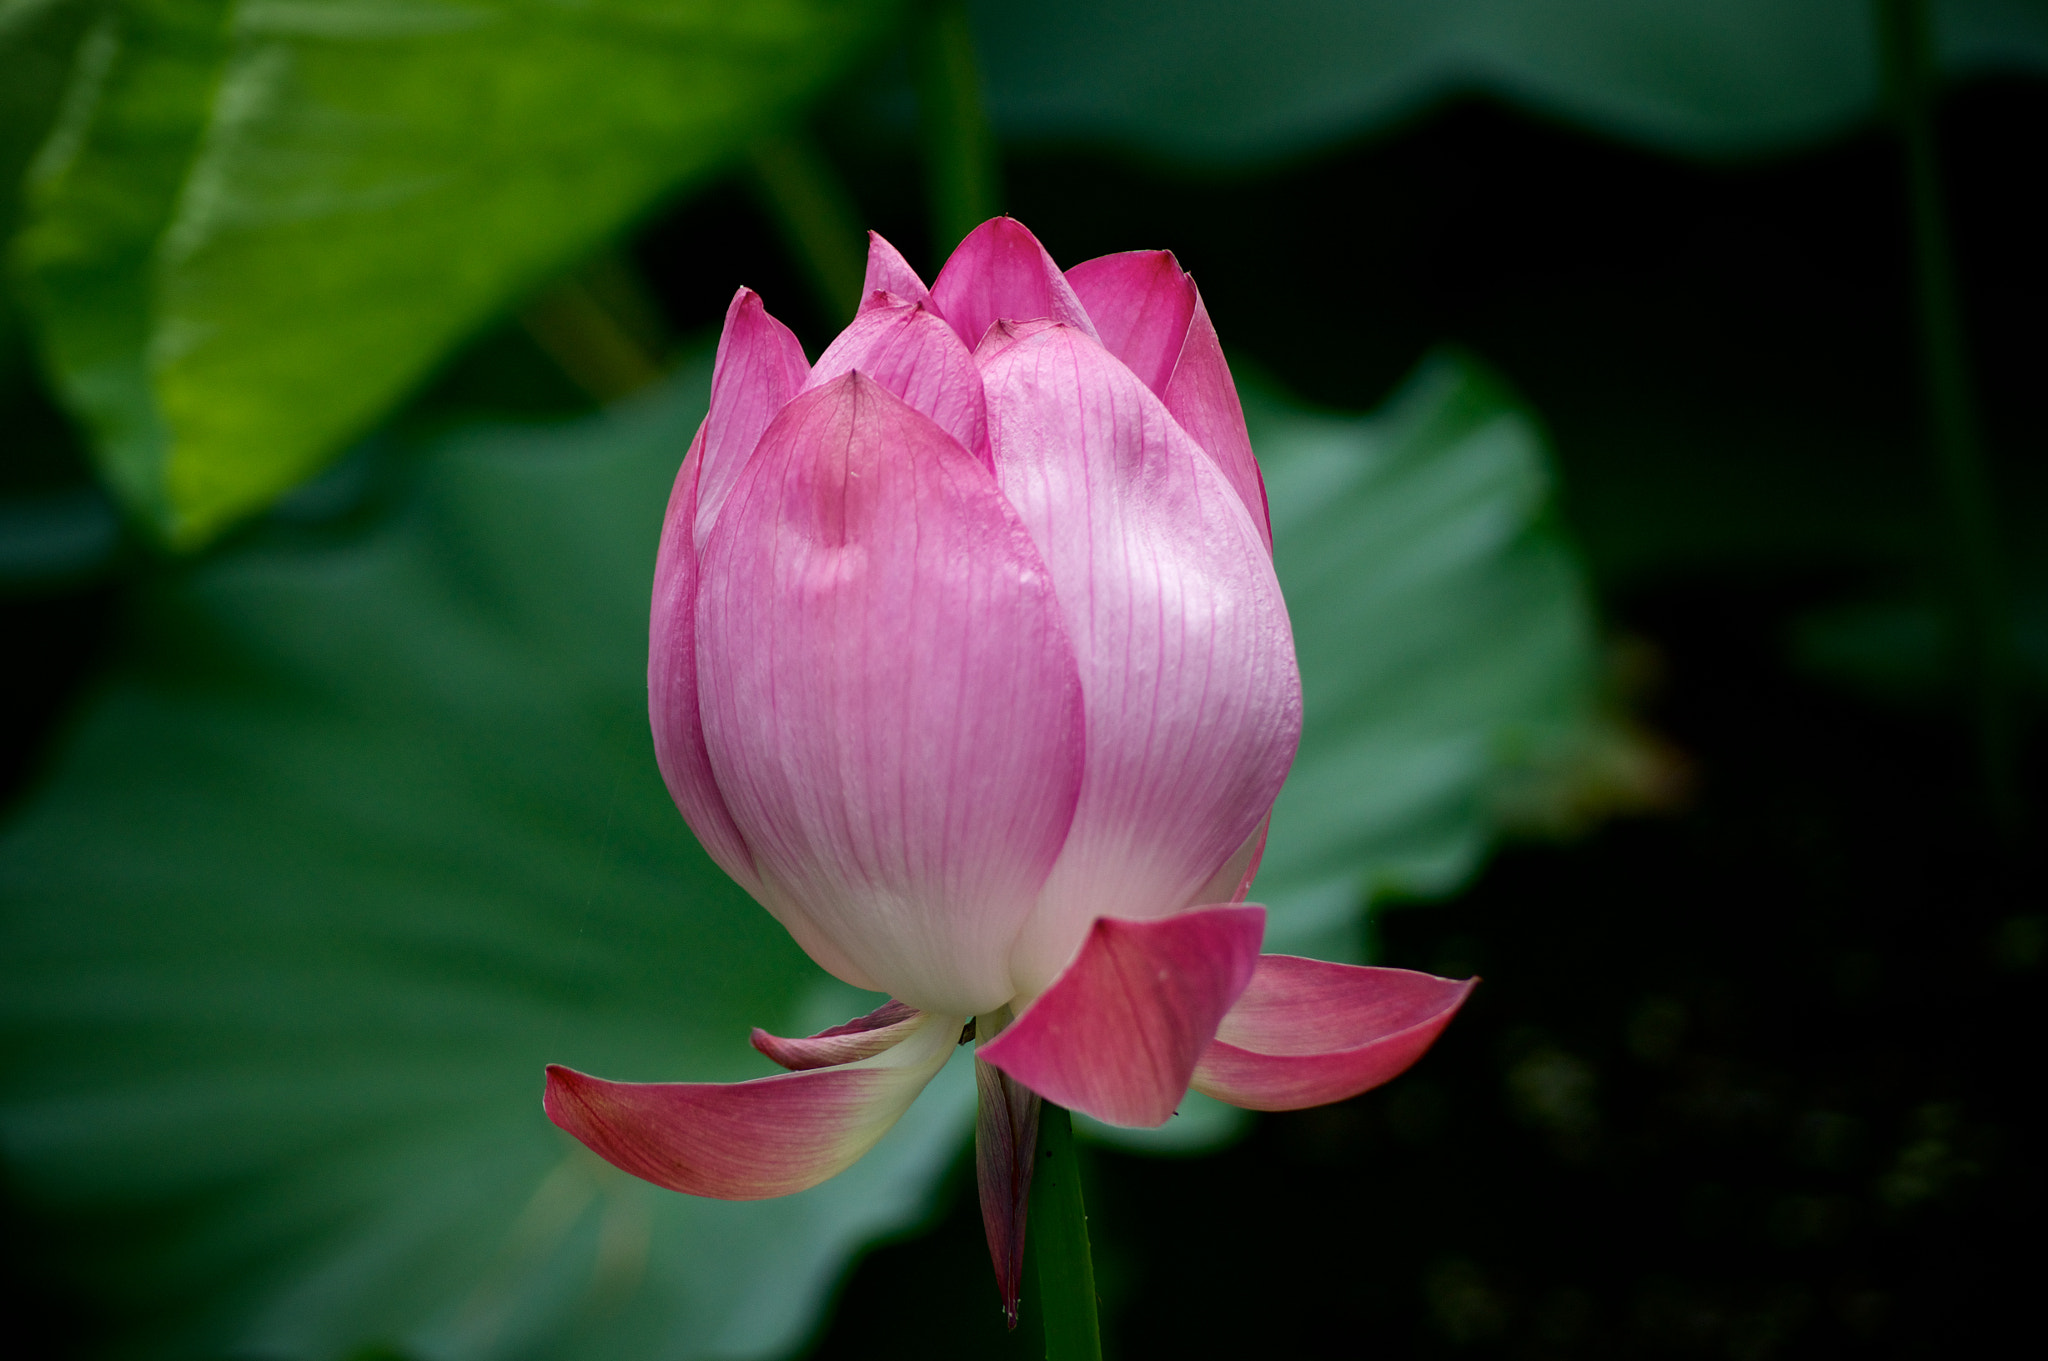 Photograph Jewel of a Lotus by AAAndrew M on 500px